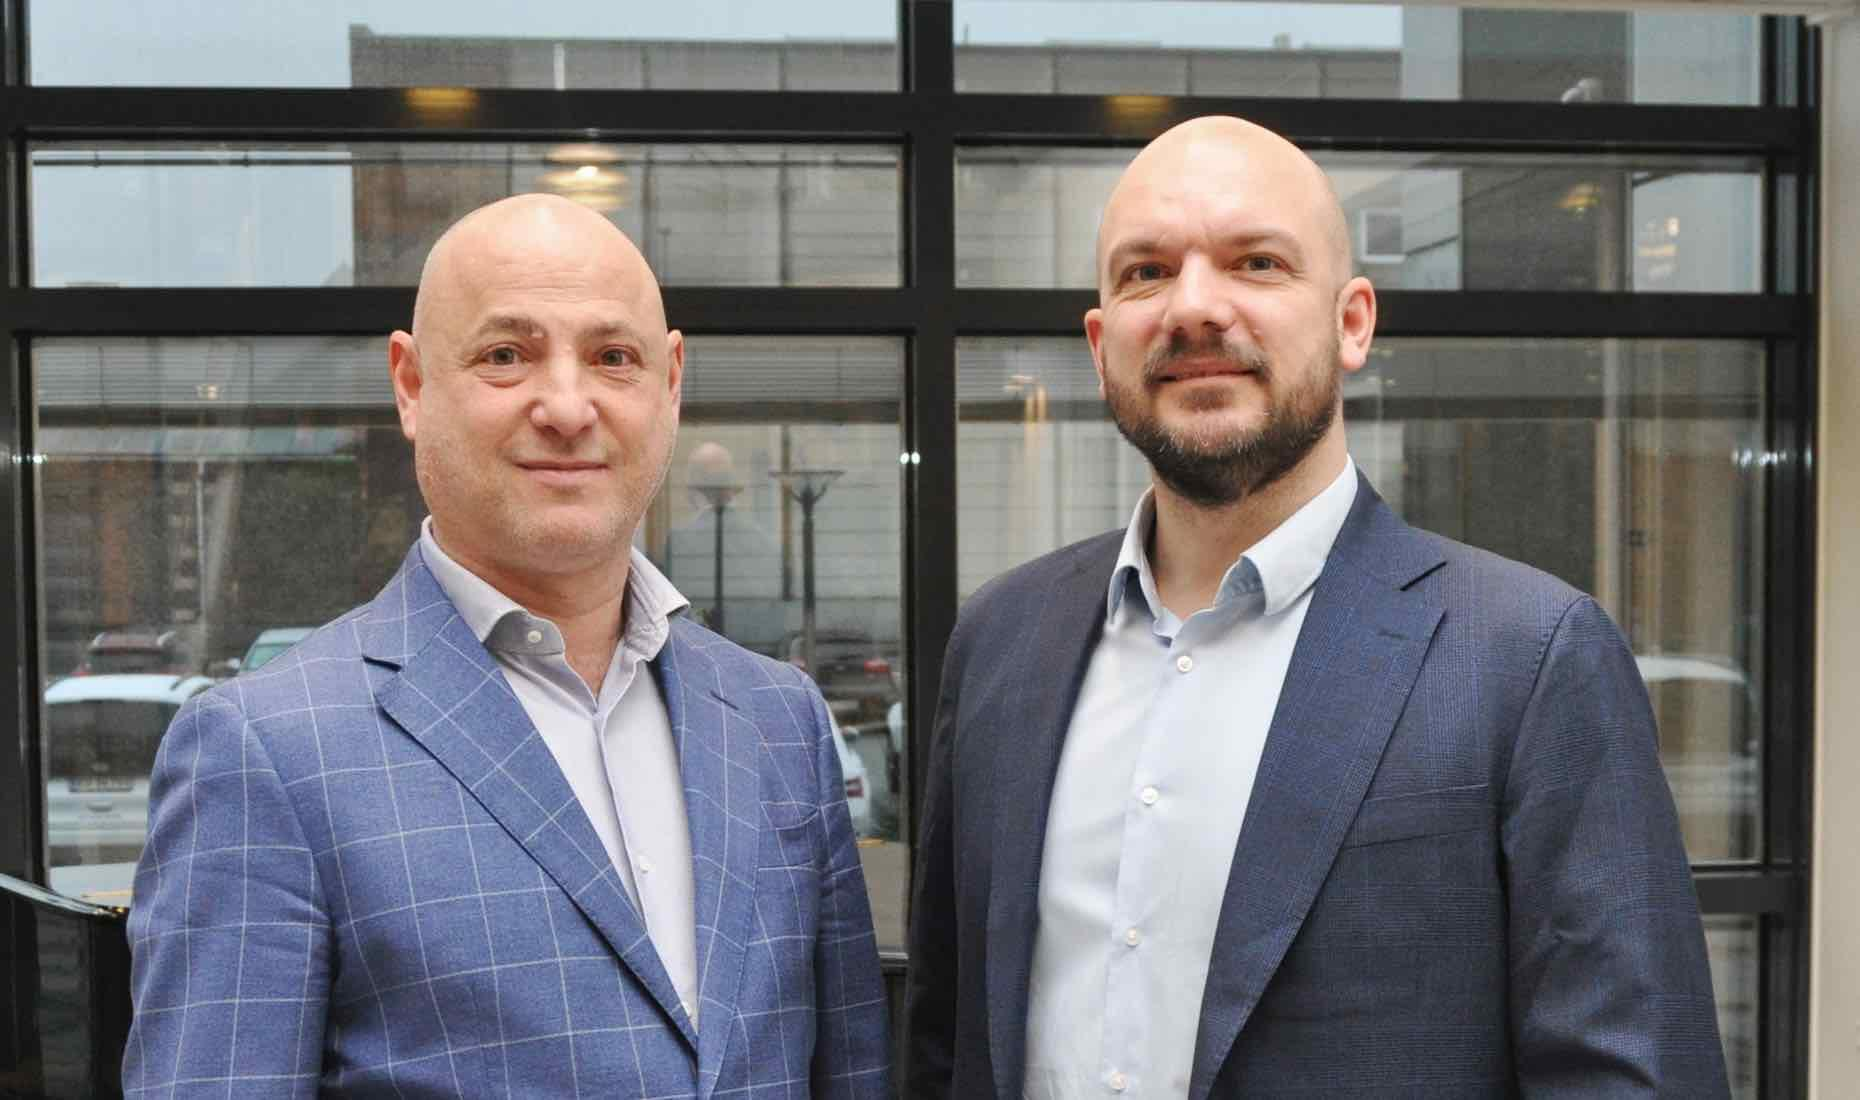 From left to right: Alessandro Crocitto and Thomas Bek of Blue Water Shipping.